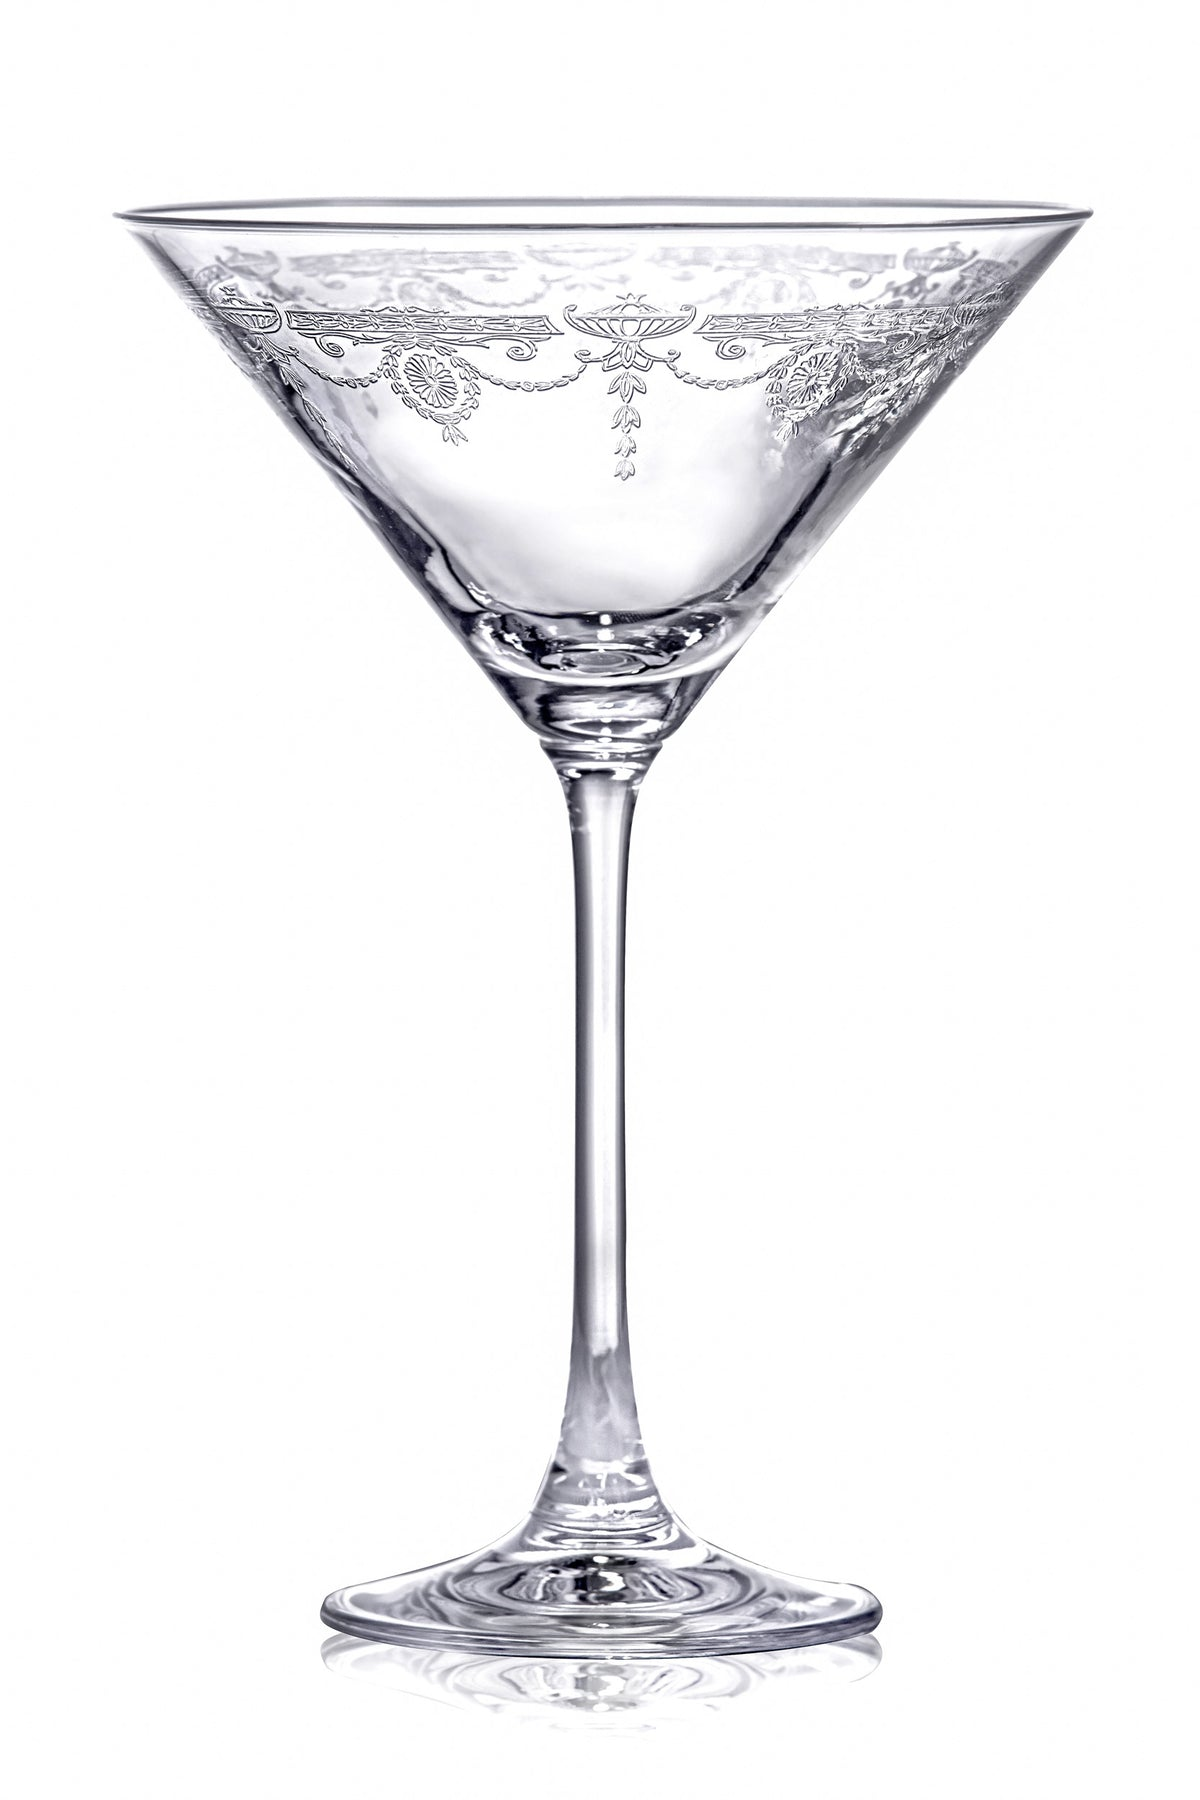 Catherine Martini Cocktail Glasses - Set of 6 Drinking Glasses